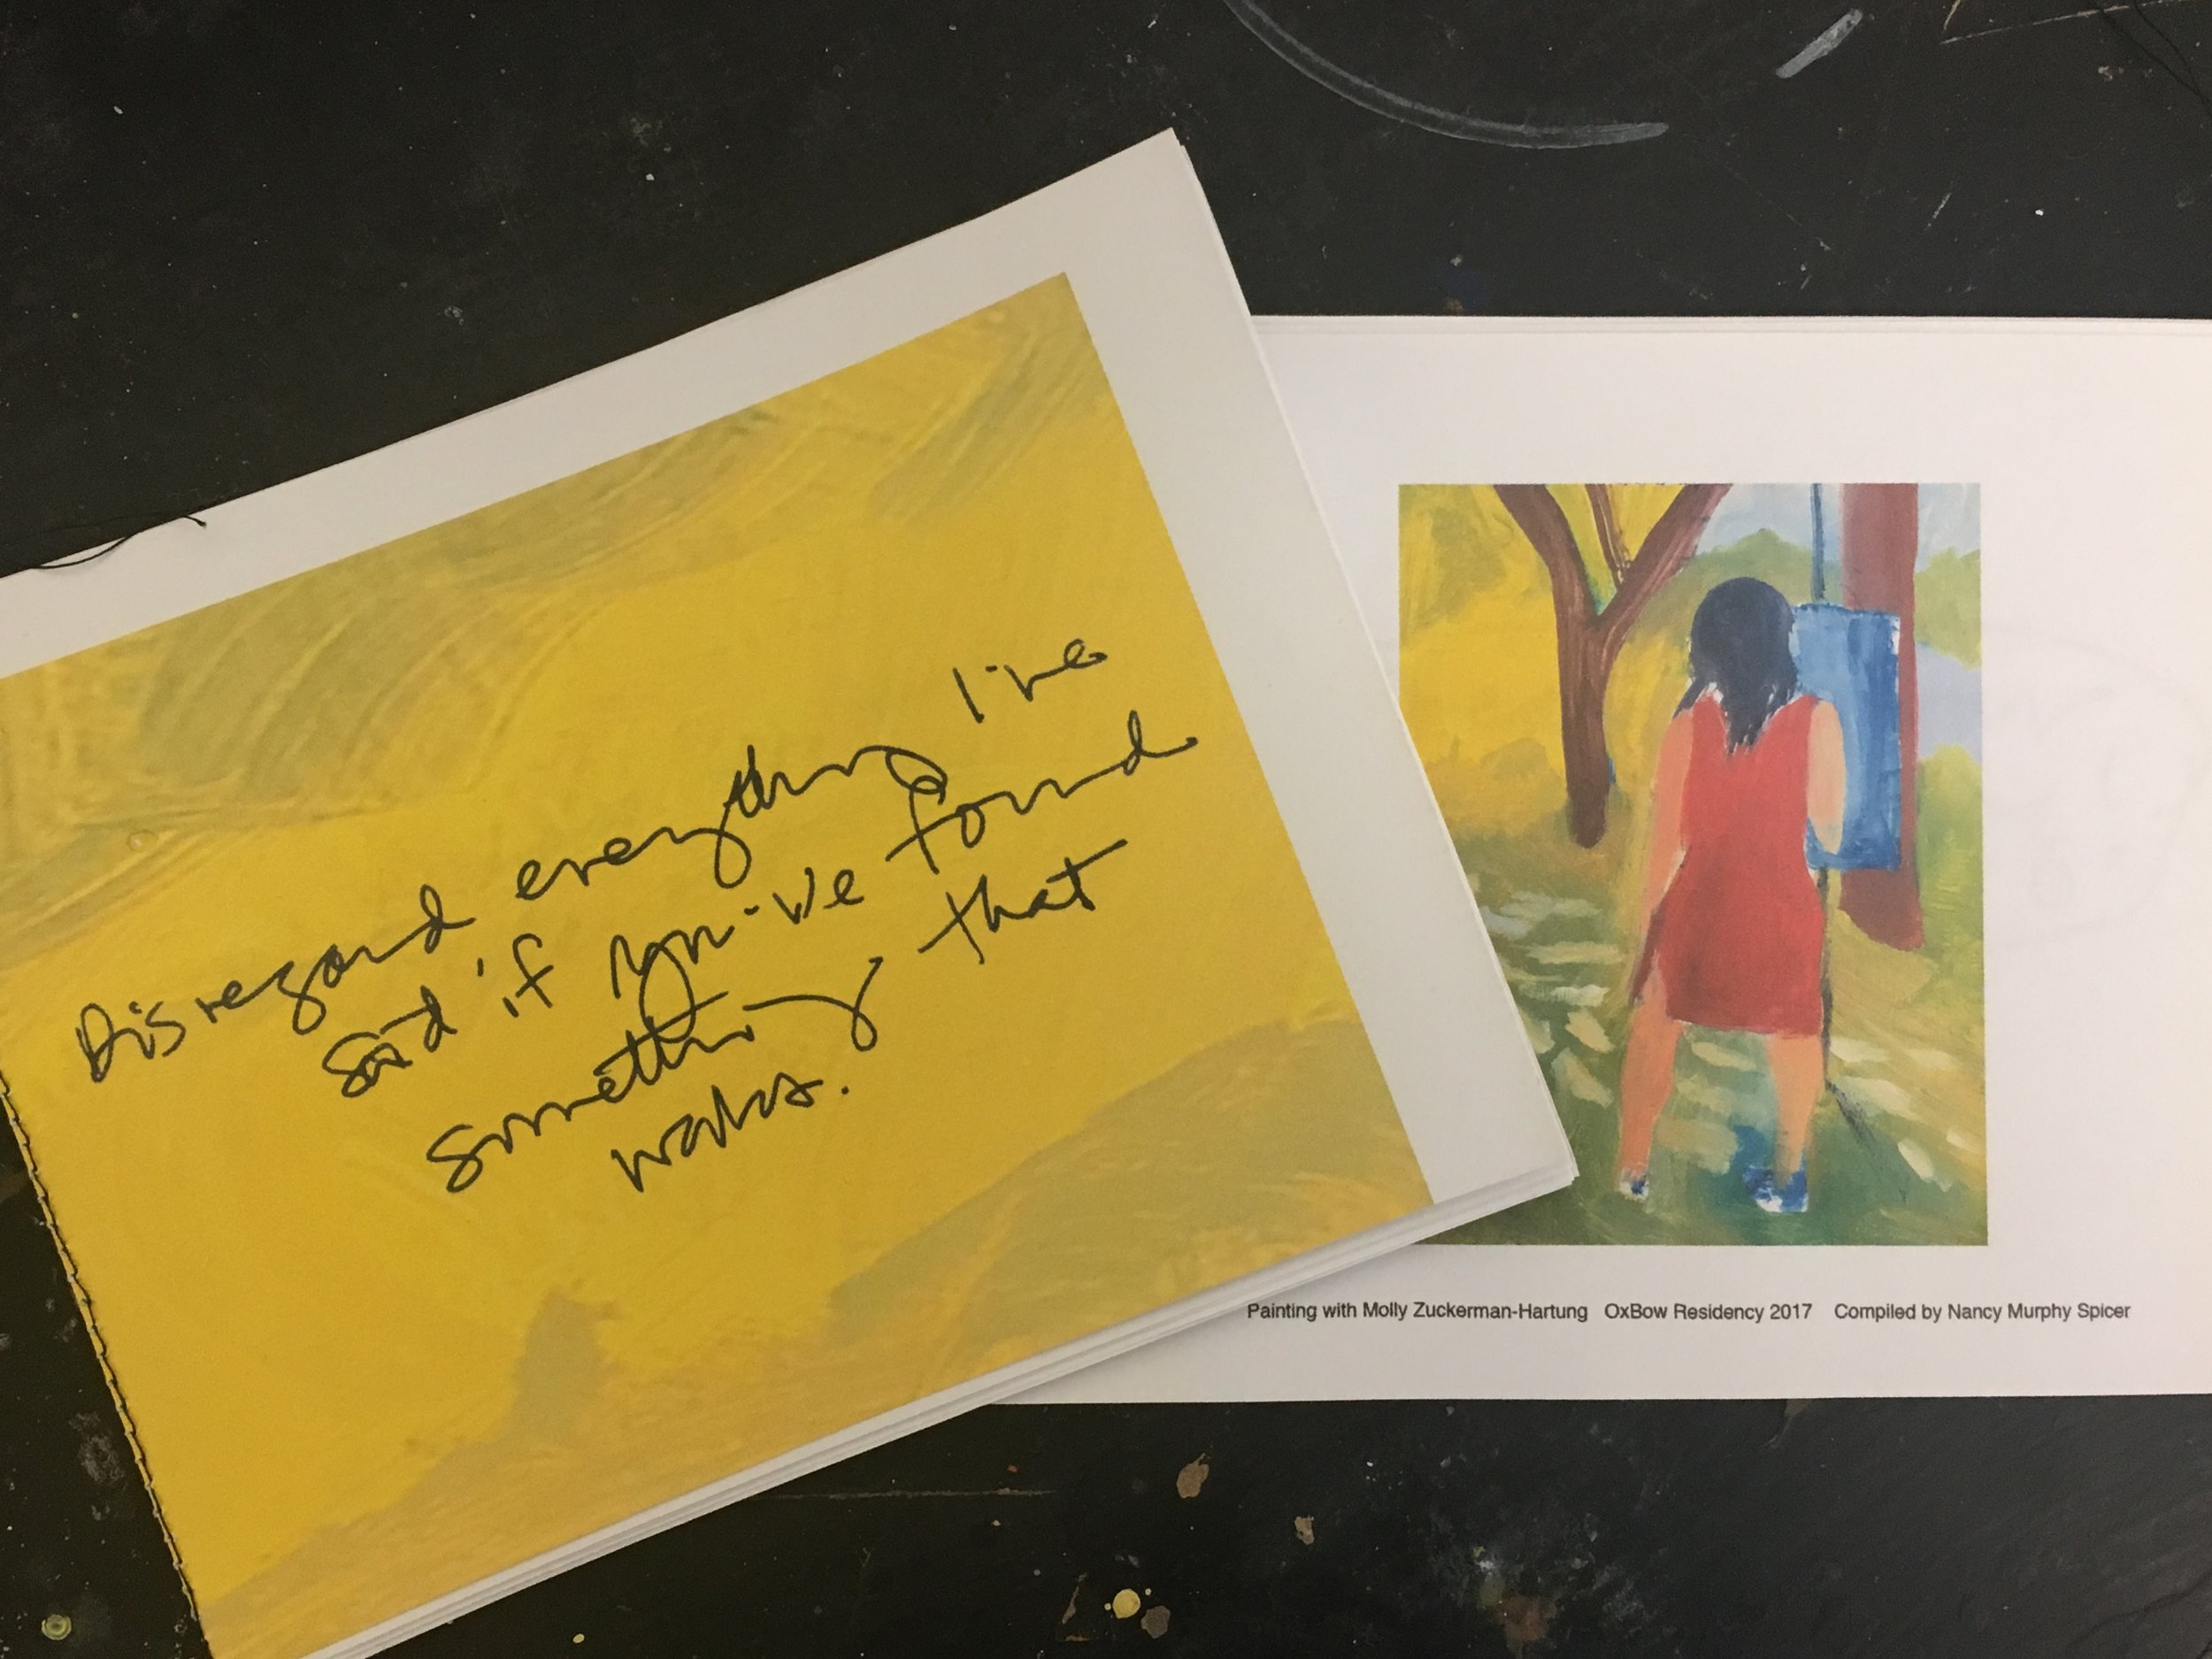 Artists book of painting wisdom from Molly Zuckerman-Hartung